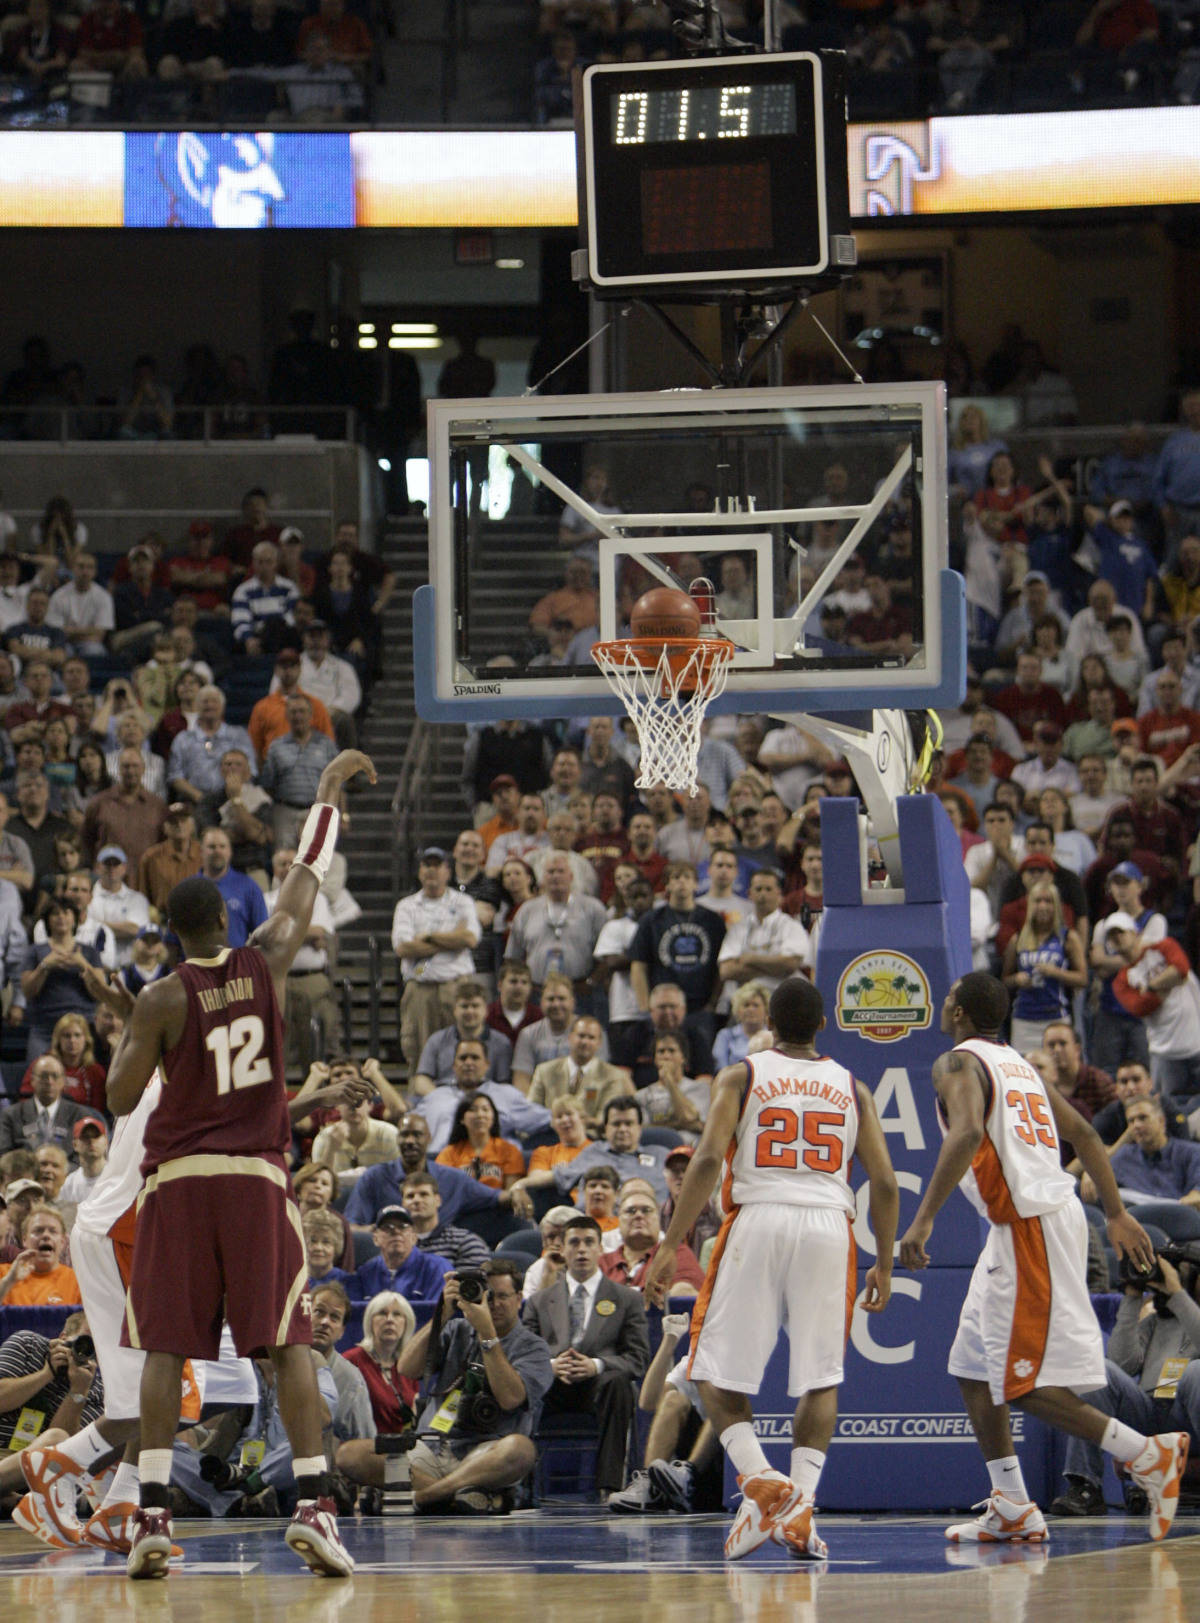 Florida State's Al Thornton (12) sinks the game-winning free throw to beat Clemson 67-66 in a first round game of the Men's Atlantic Coast Conference basketball tournament in Tampa, Fla., Thursday, March 8, 2007. (AP Photo/John Raoux)